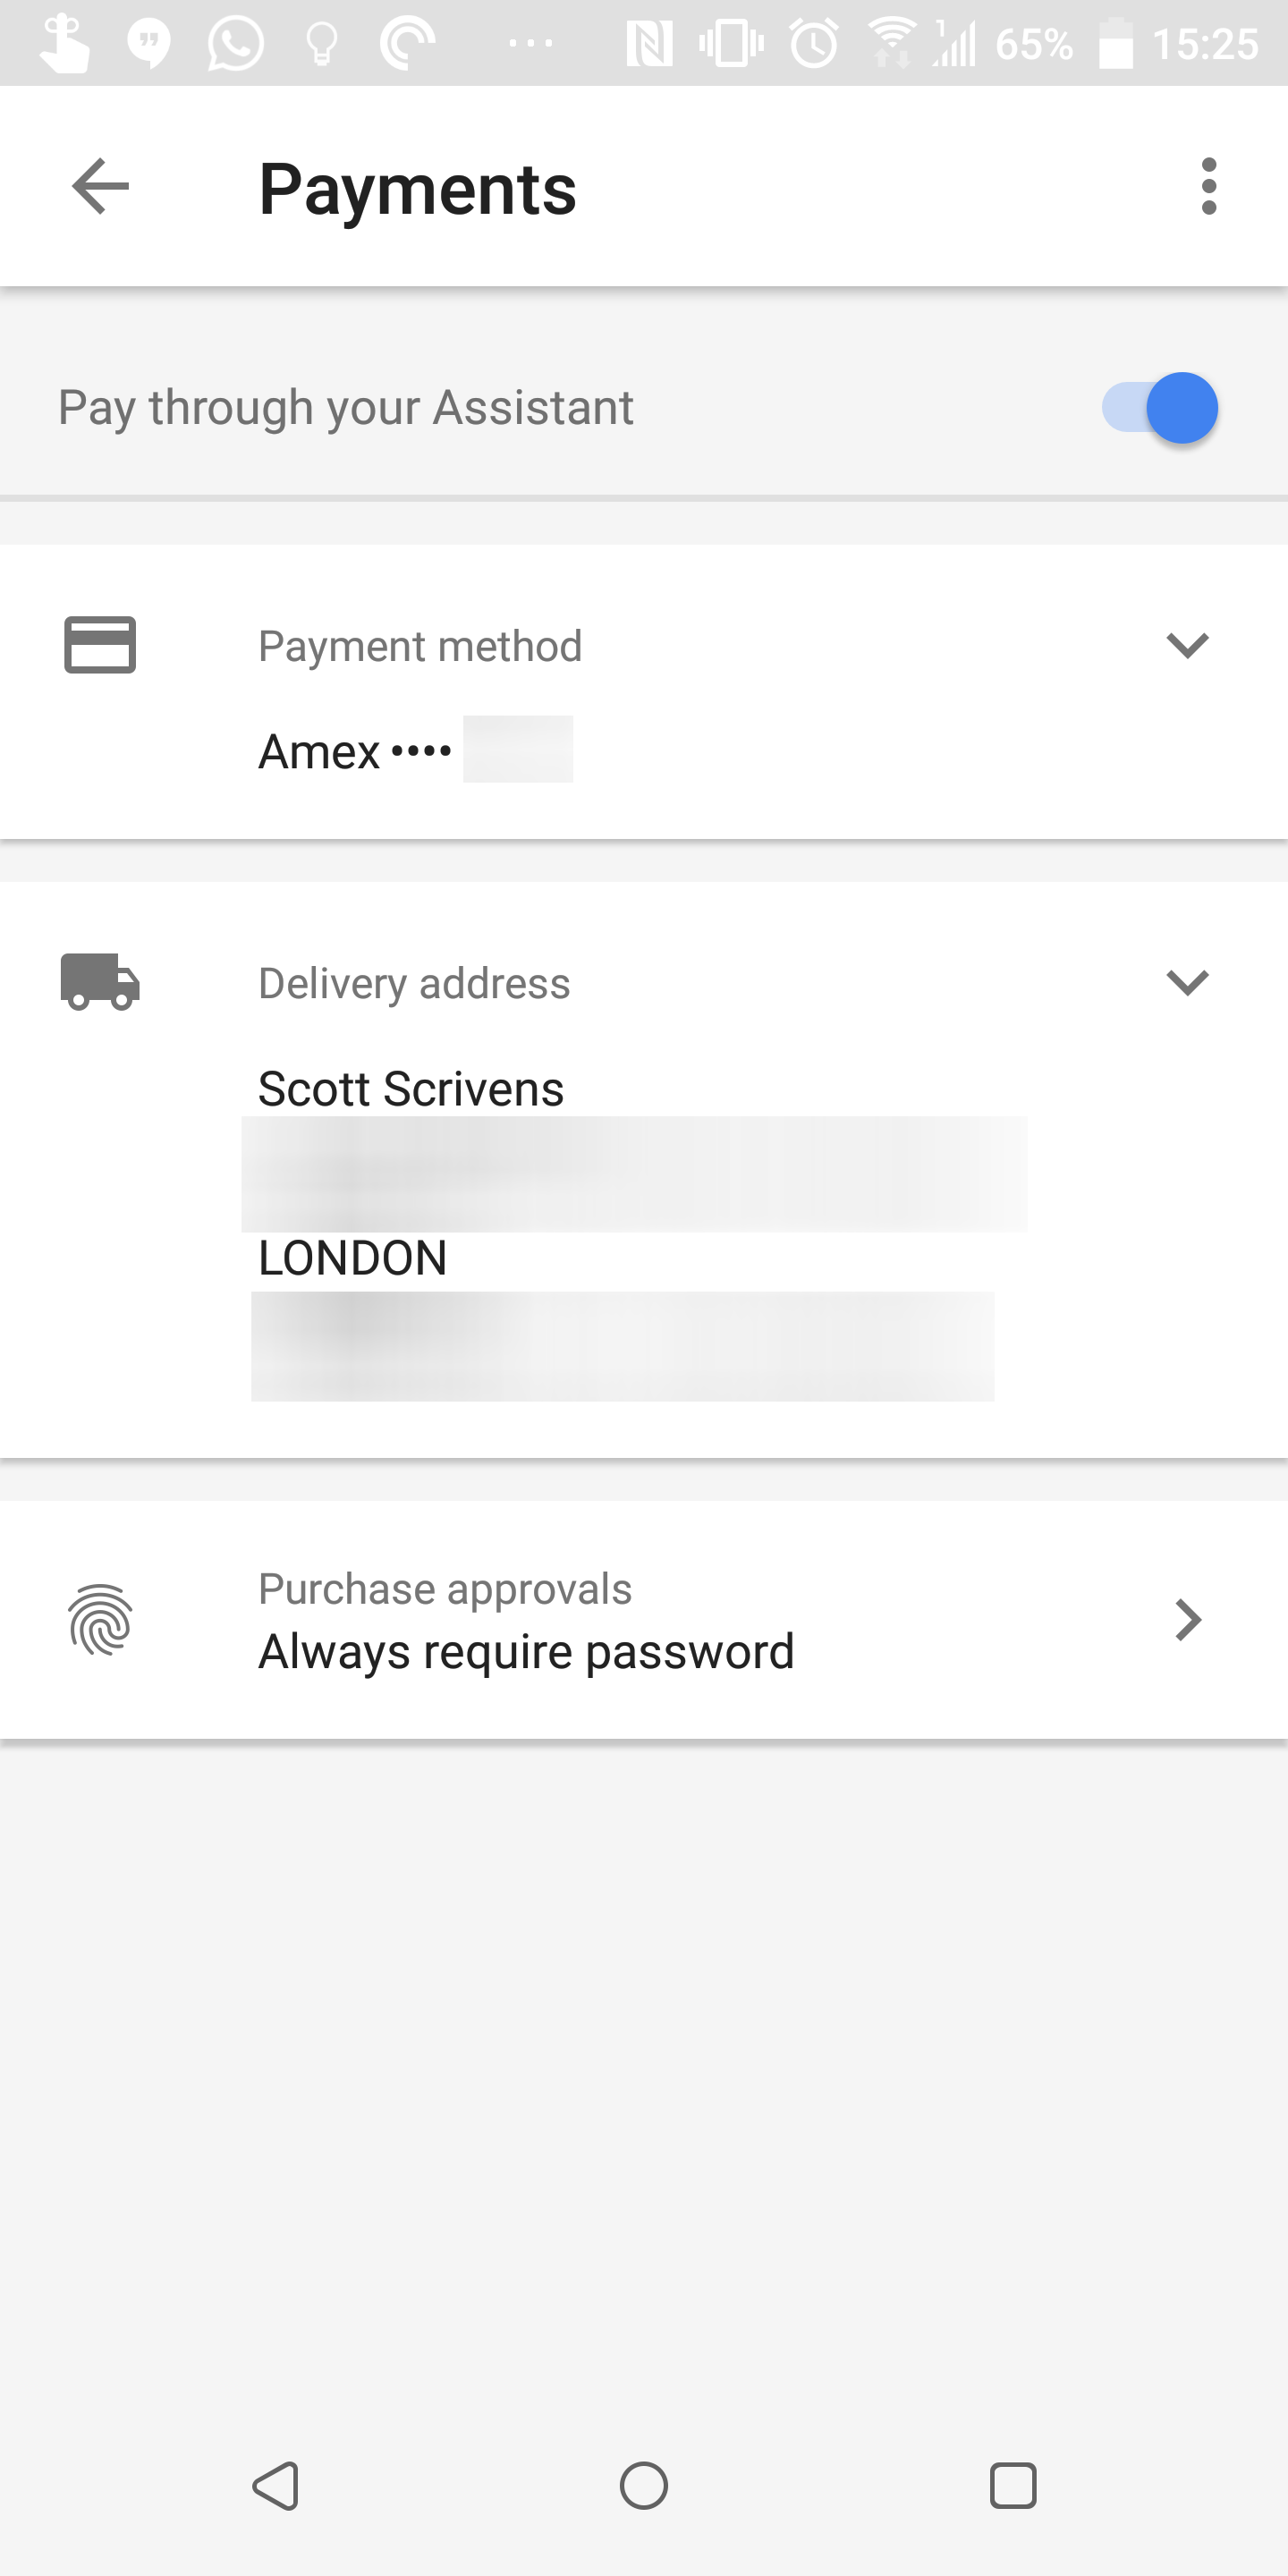 Update] You can now set up a Google Assistant payment method